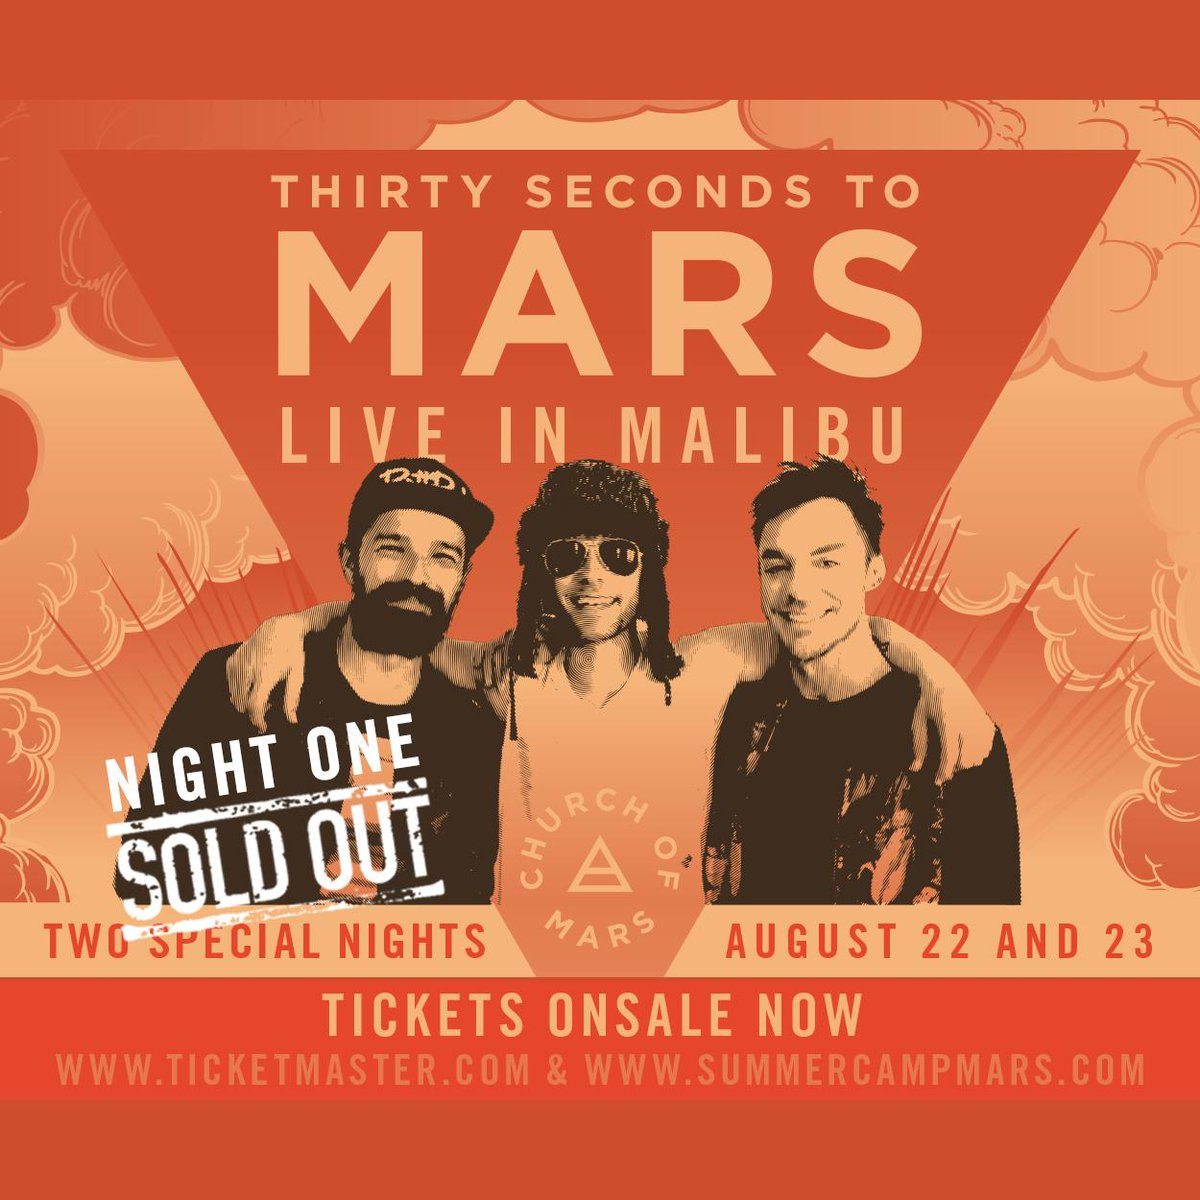 ???? NEWSFLASH: LESS THAN 50 TIX LEFT for MARS IN MALIBU NIGHT TWO!!! Who's gonna get 'em?! http://t.co/drUp0BzyU3 http://t.co/czOY7v9qEx